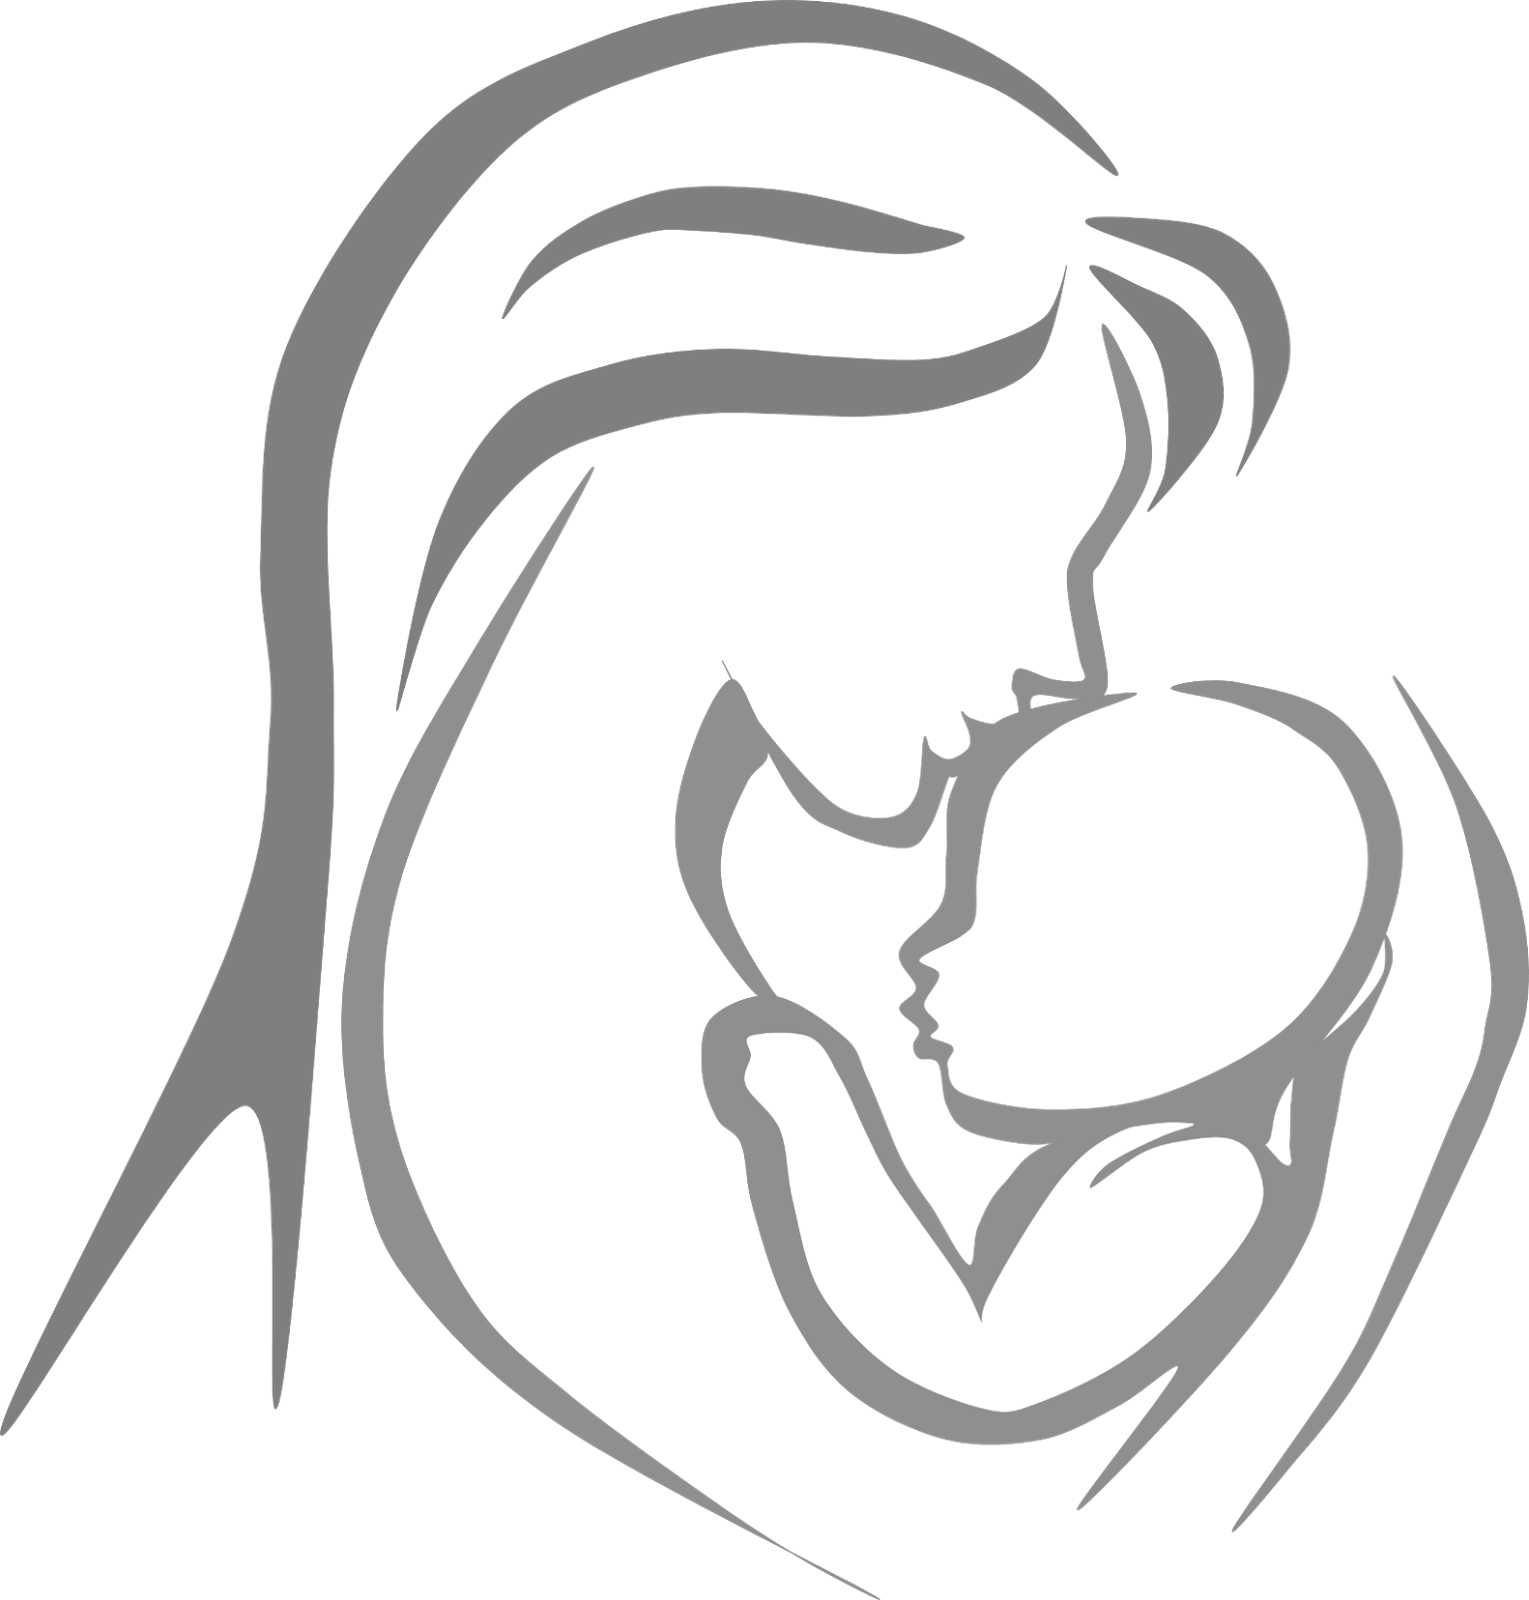 Mom and kid in car clipart clipart black and white download Mother Transparent PNG Pictures - Free Icons and PNG Backgrounds clipart black and white download